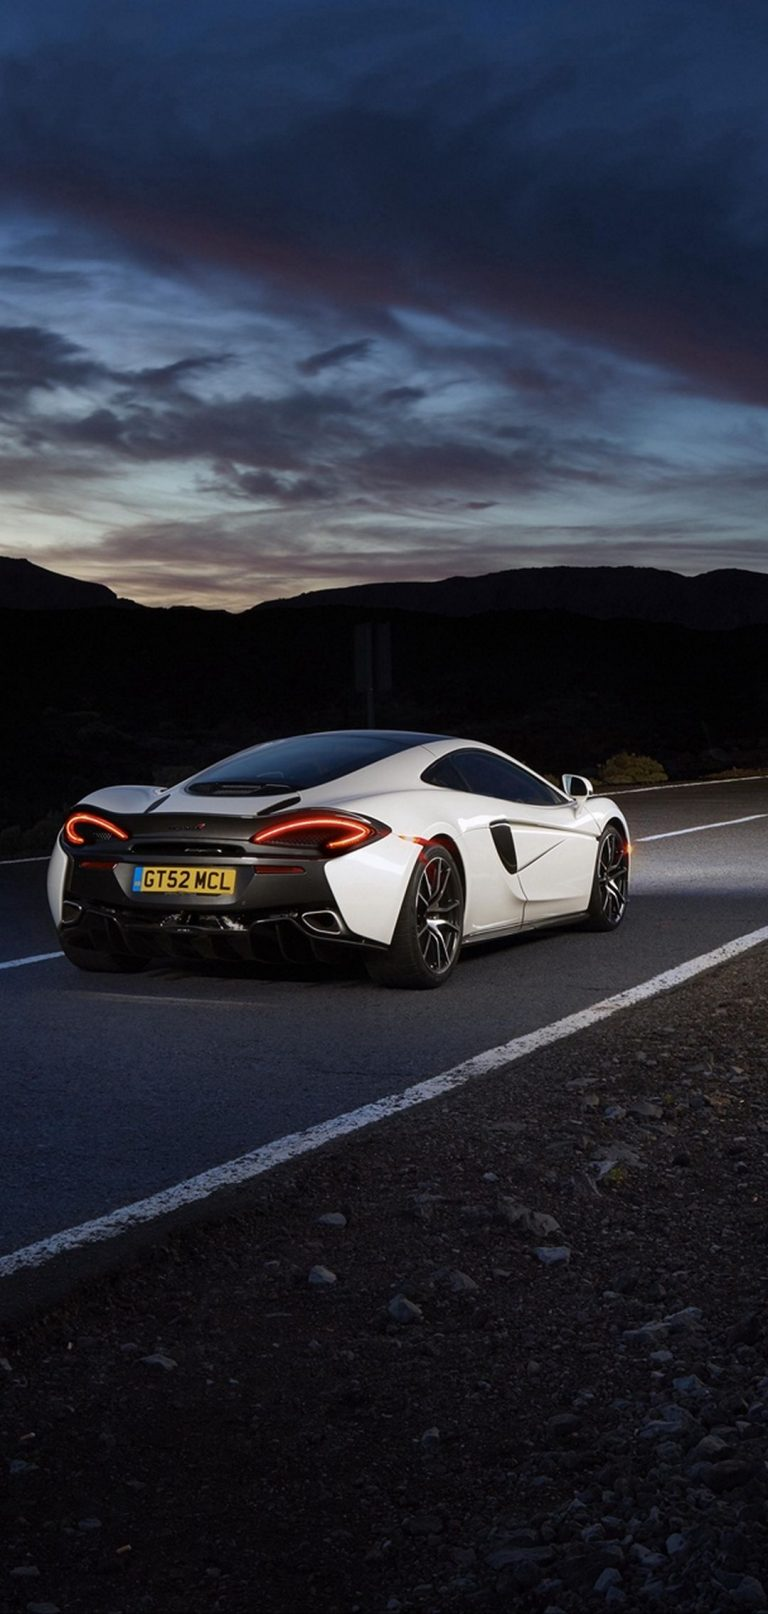 Mclaren 570gt Supercar Road Night Rear View 1080x2270 768x1614